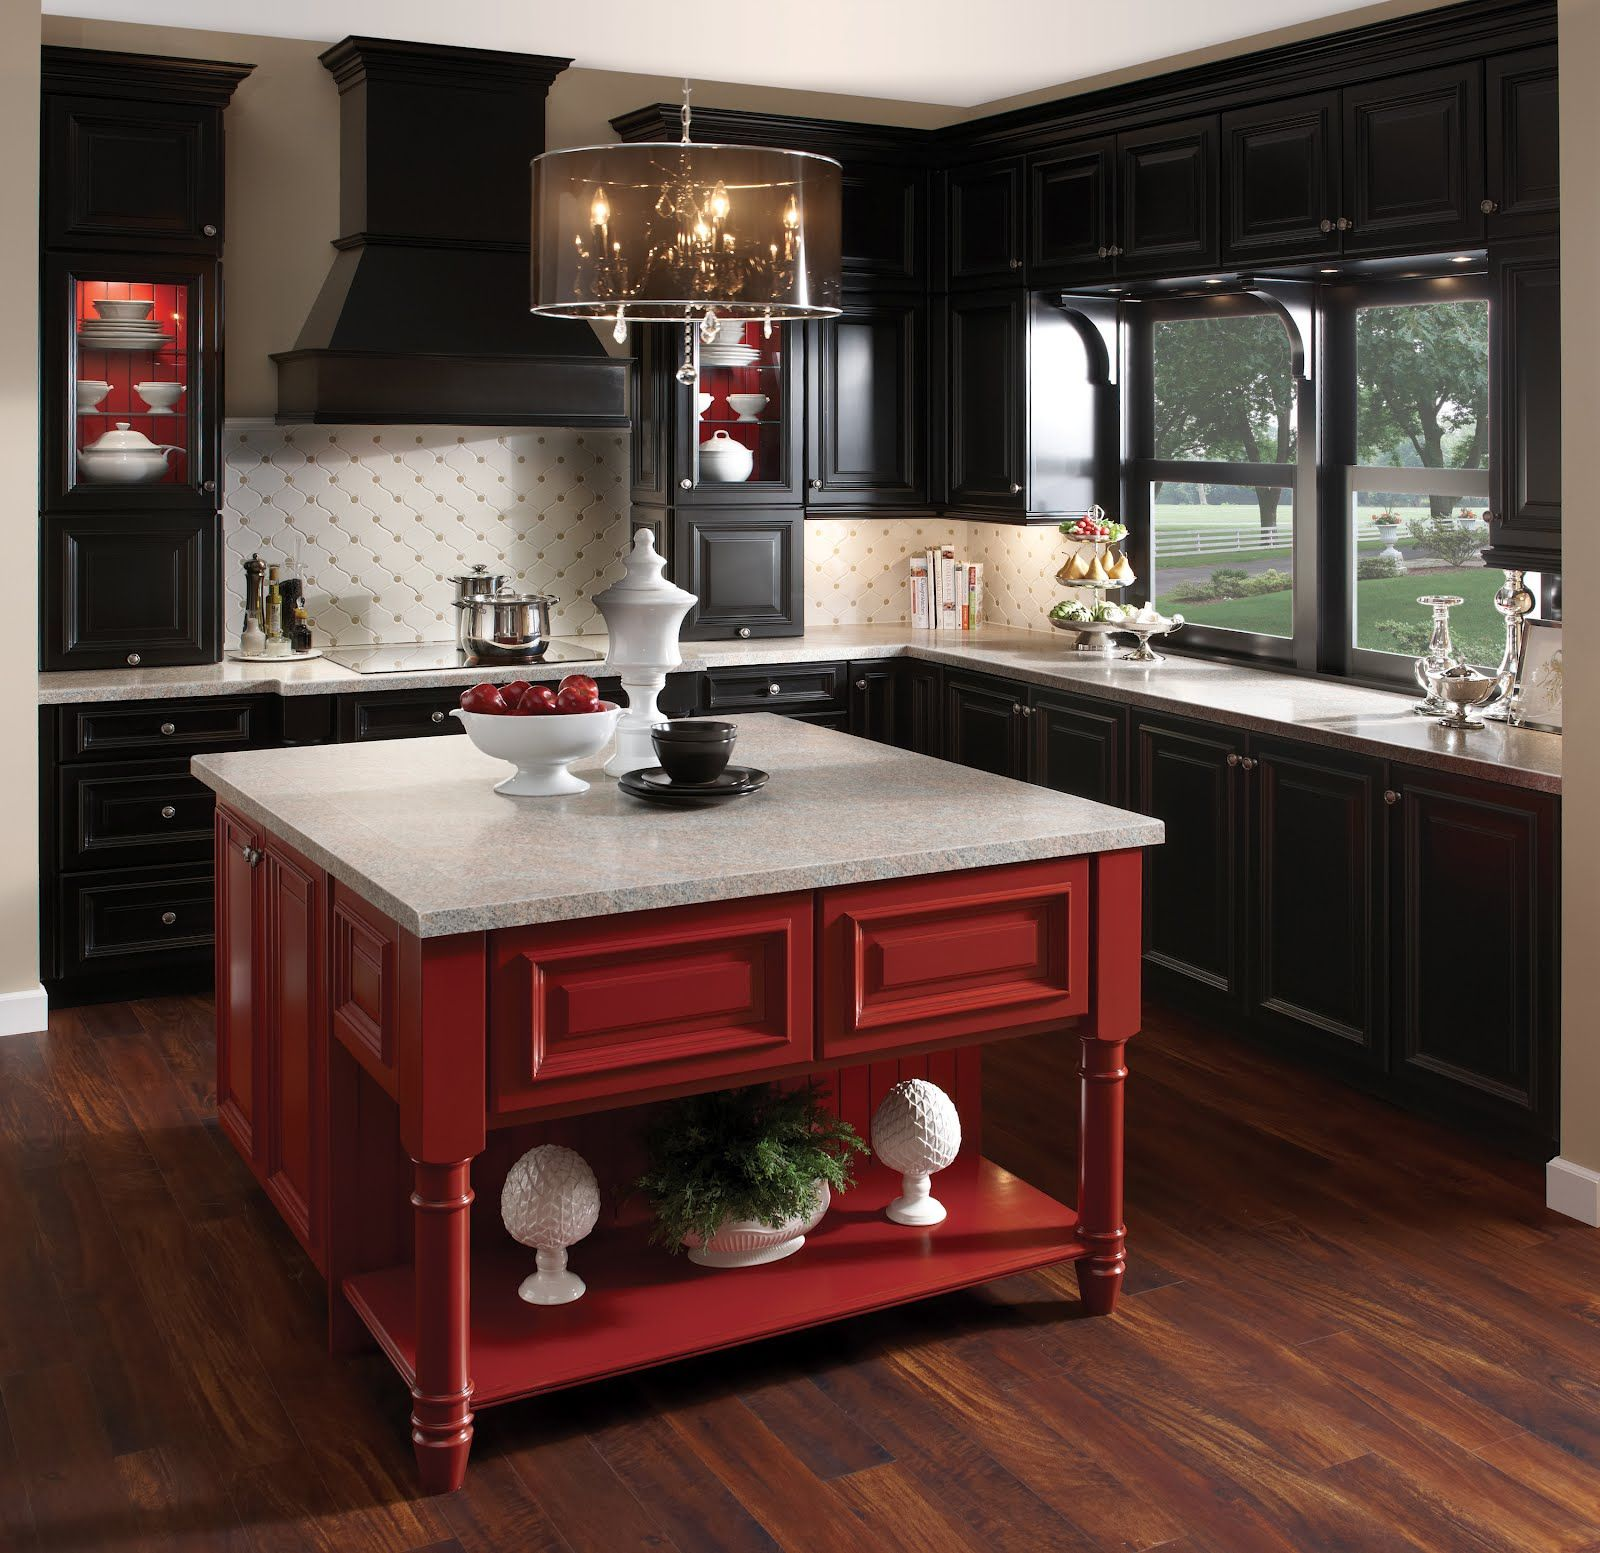 12 Kitchen Cabinet Color Combos That Really Cook Kitchen Cabinet Colors New Kitchen Cabinets Painting Kitchen Cabinets